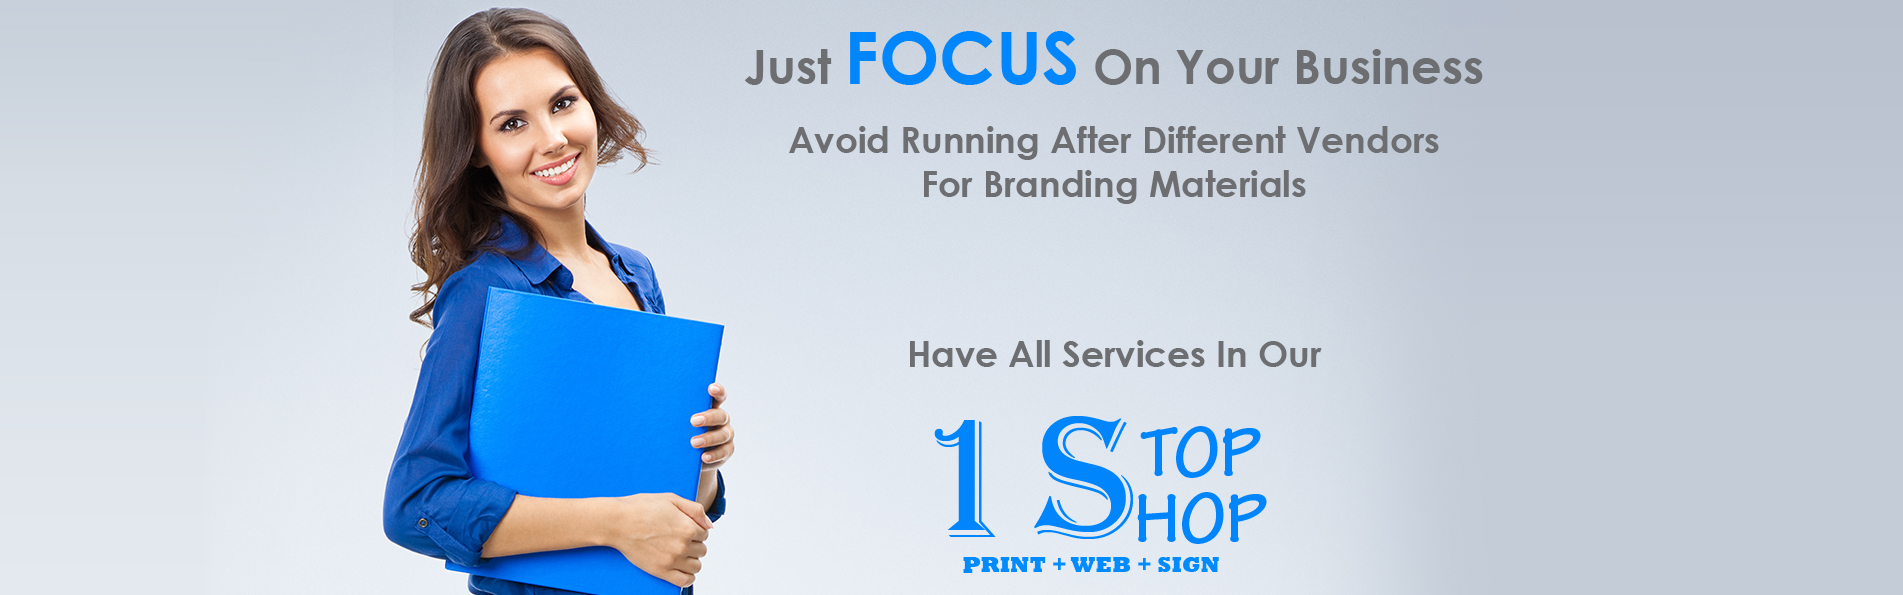 home_page_banners_3-01.jpg